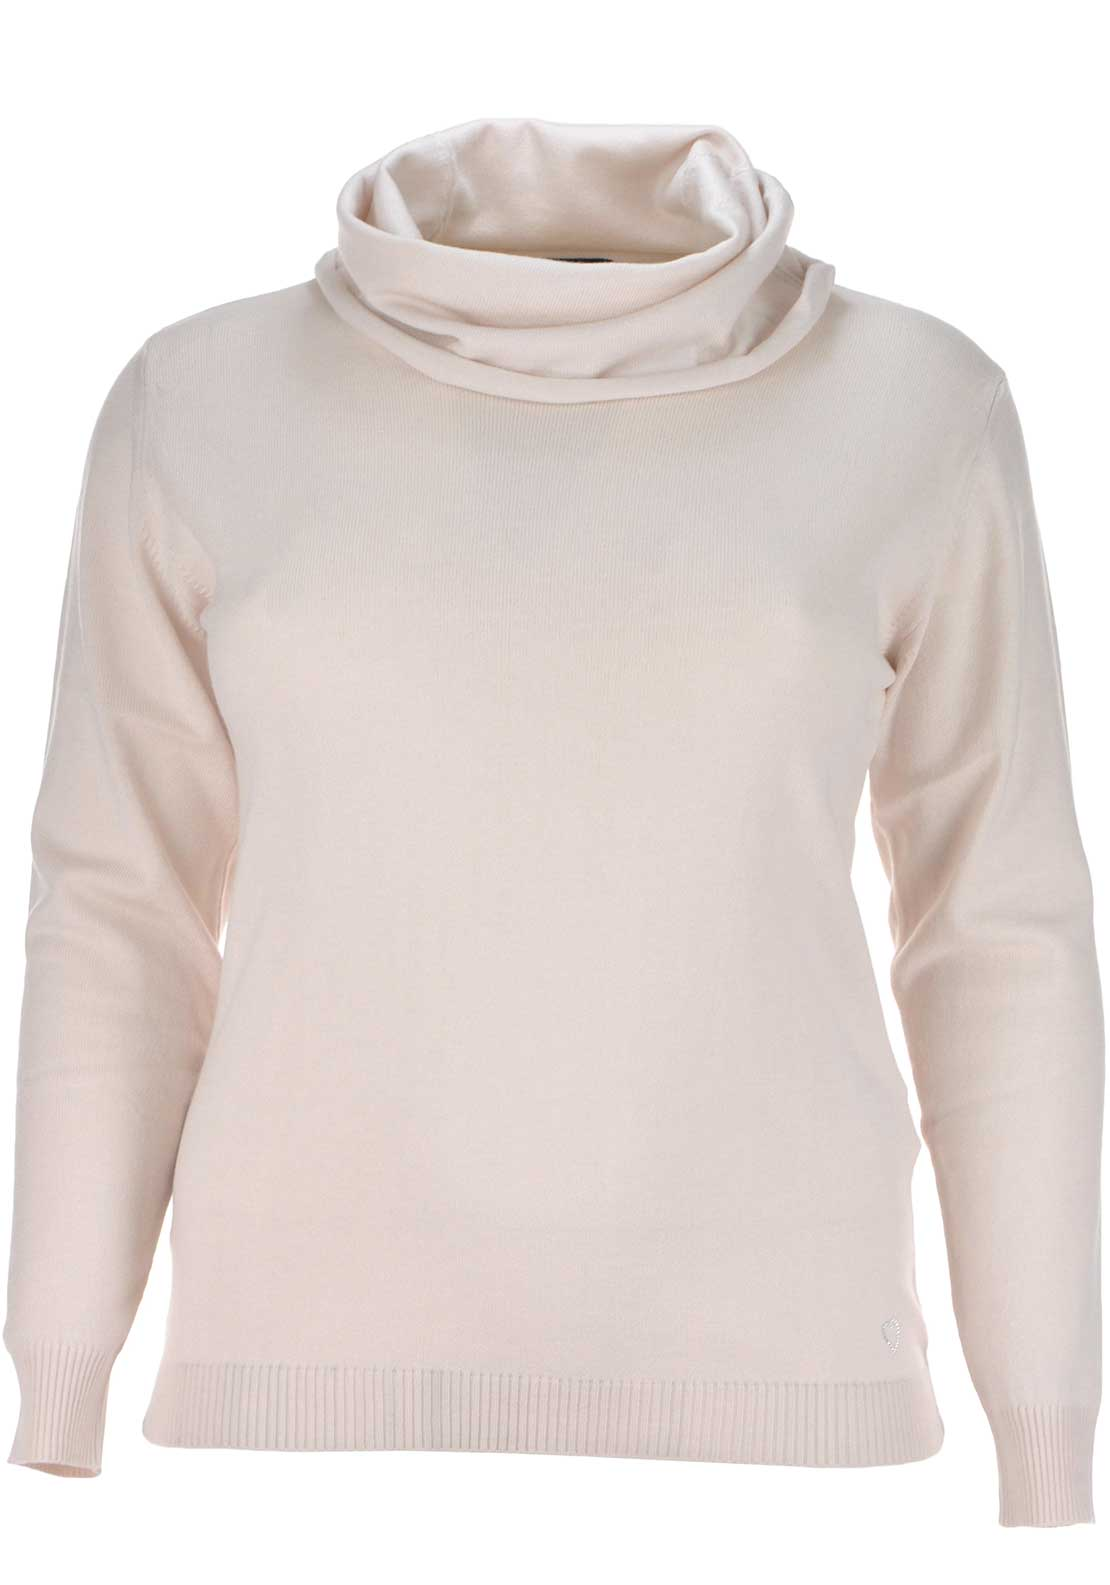 Lebek Fine Knit Draped Collar Sweater Jumper, Pale Pink